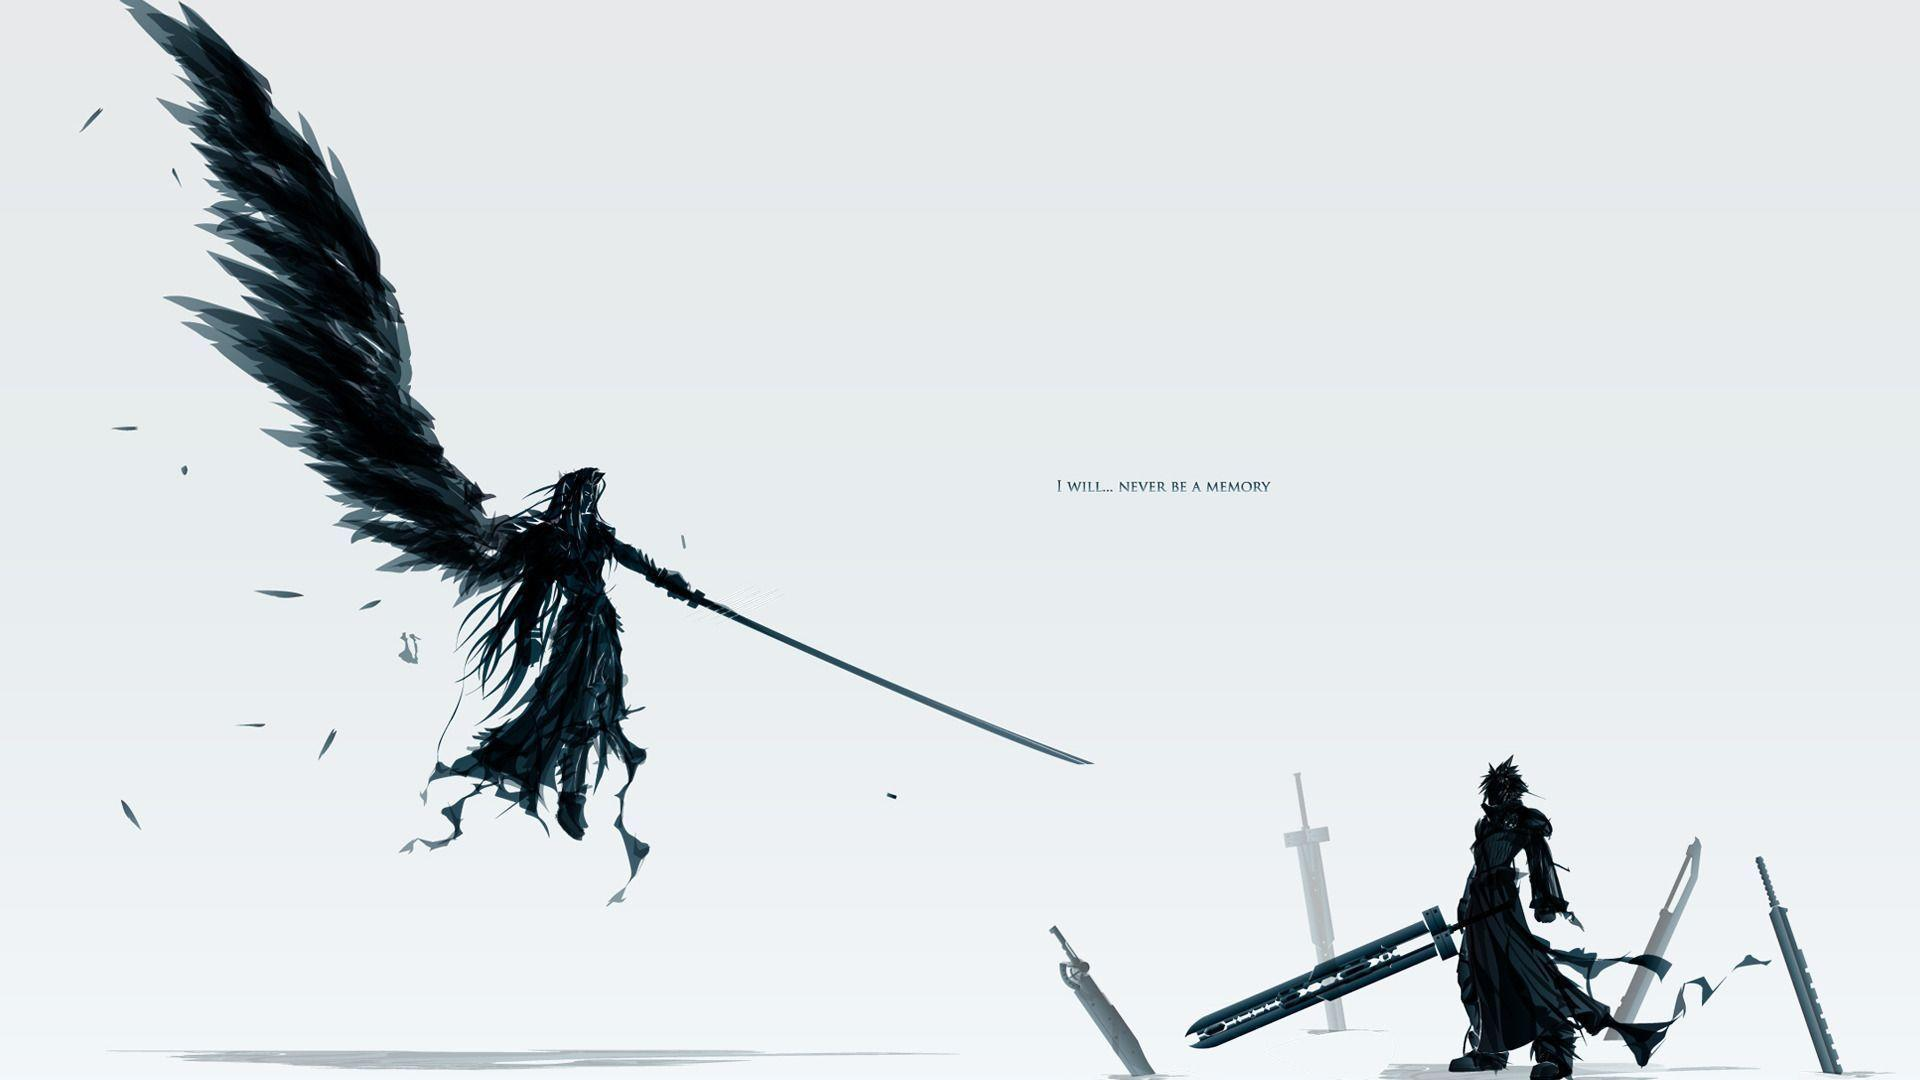 Final Fantasy VII Wallpapers #